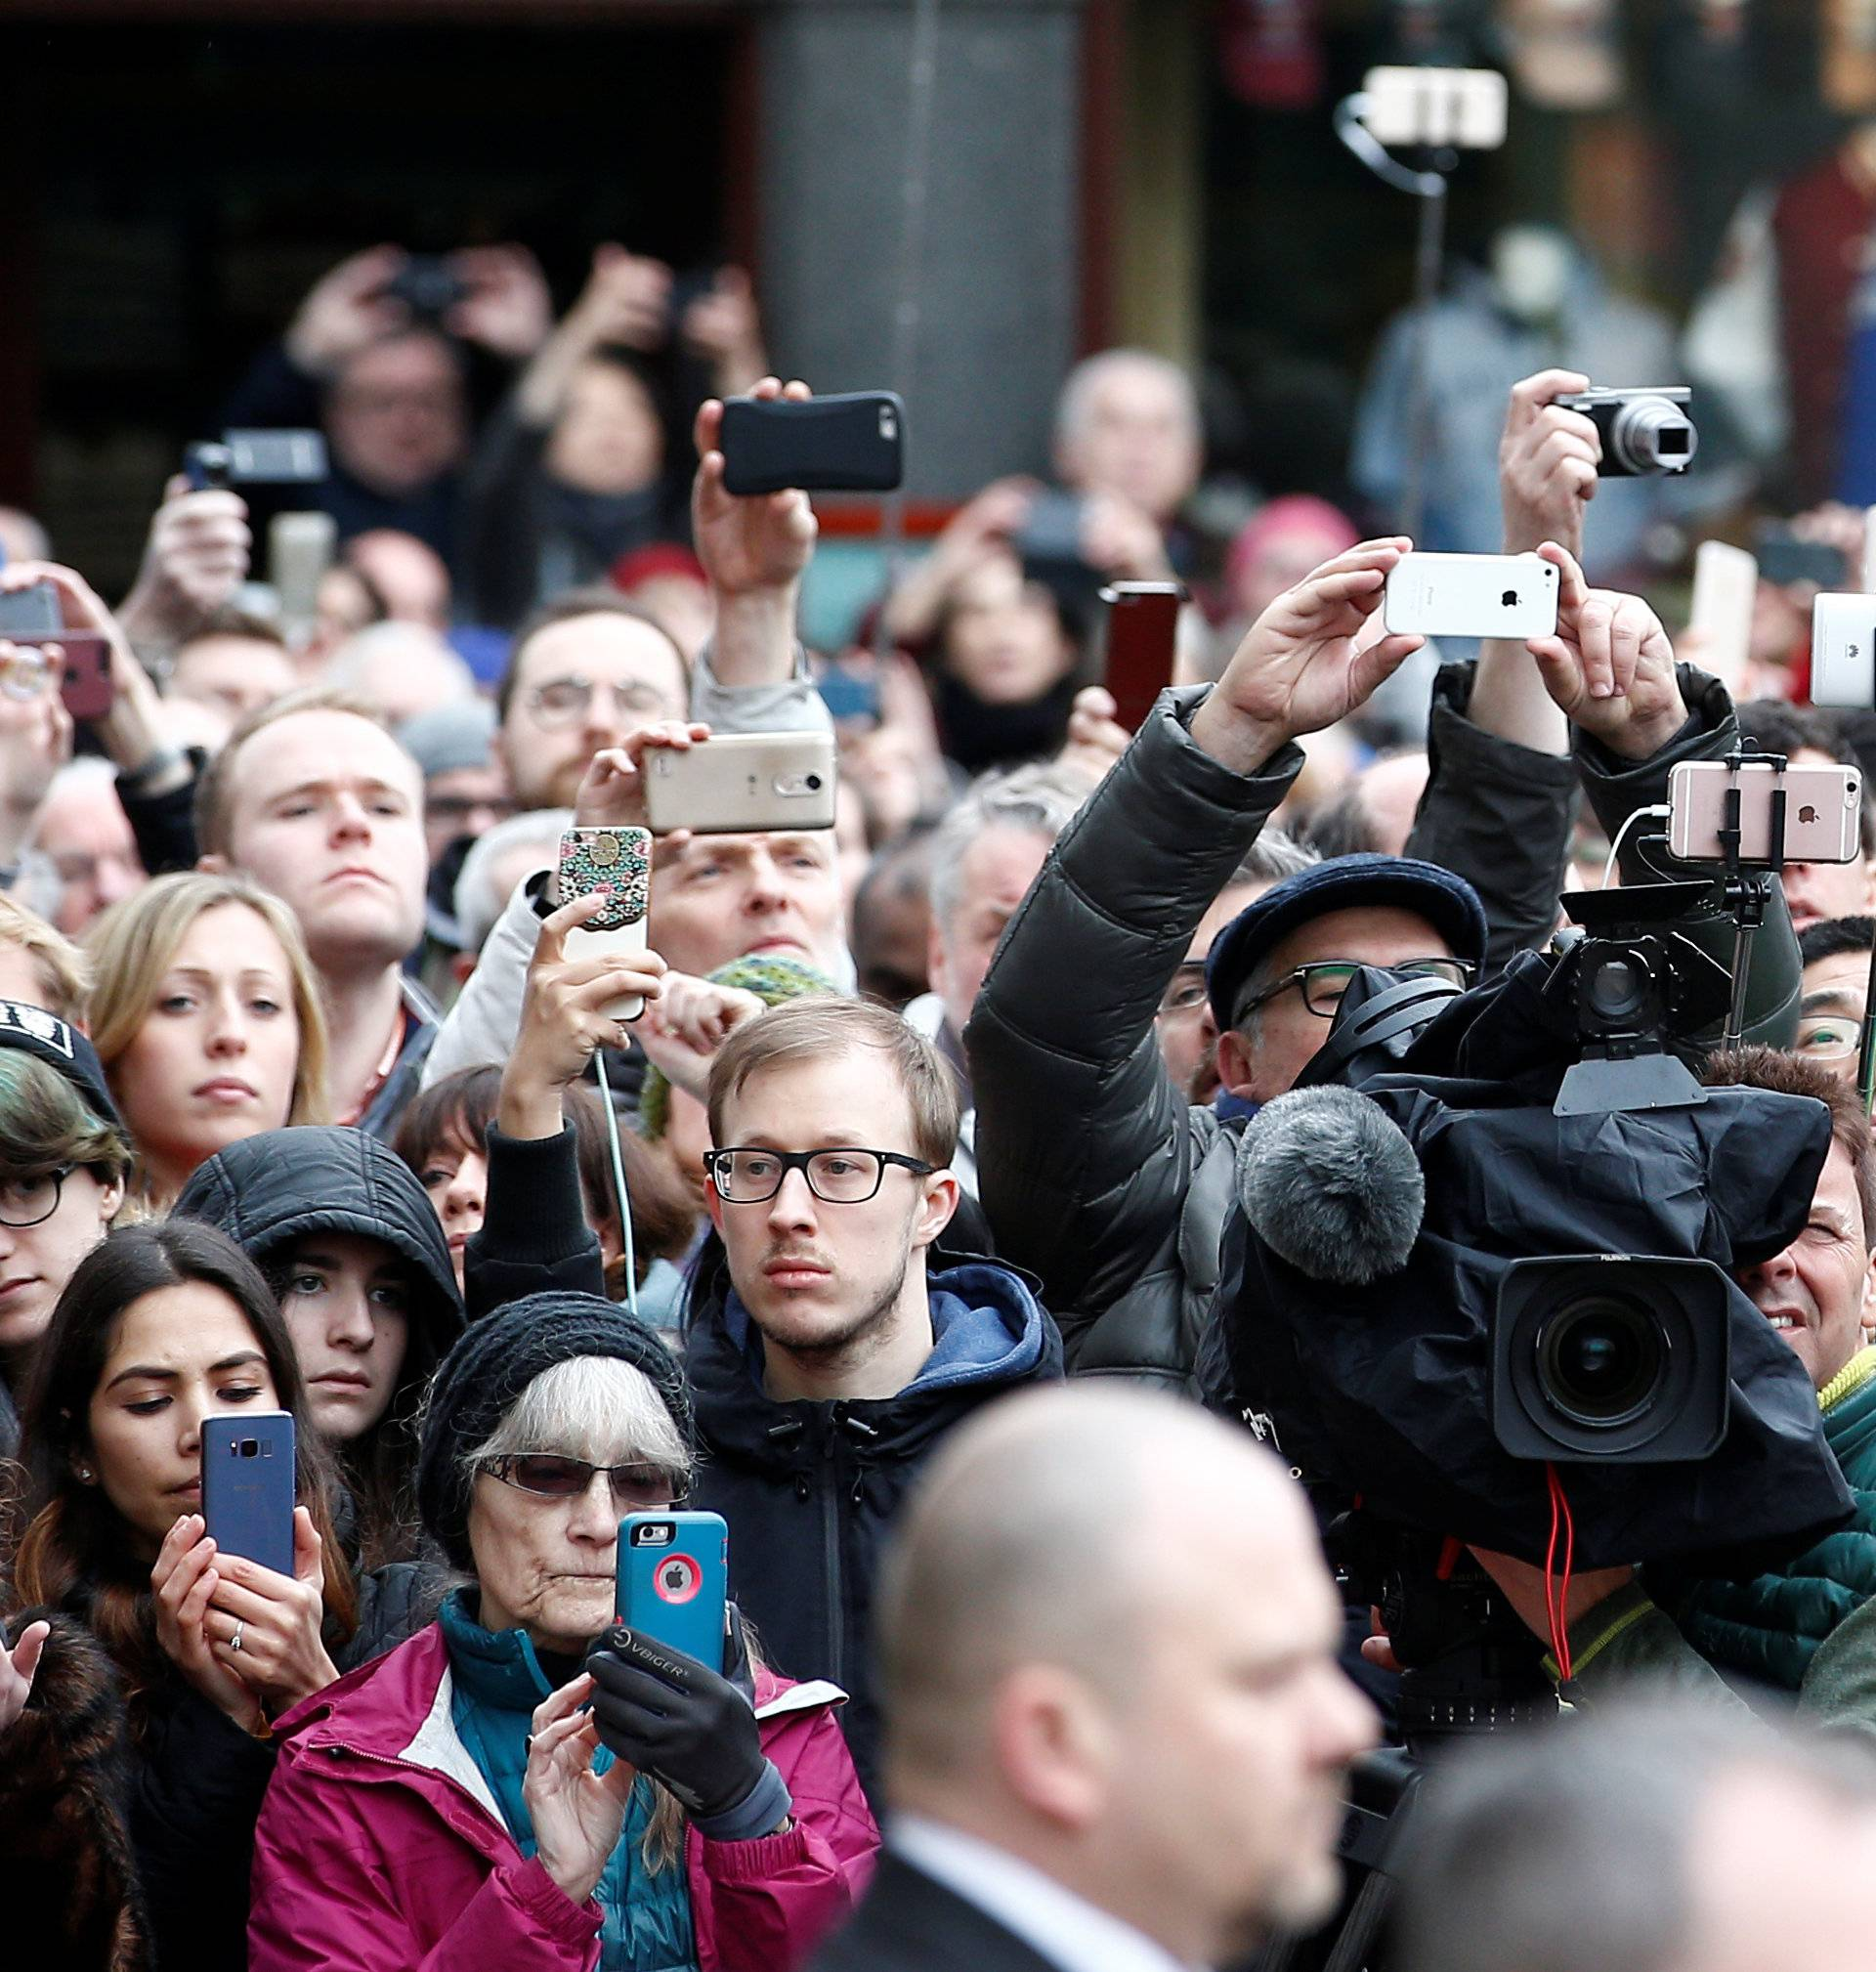 Members of the public and media photograph the funeral cortege as it arrives at Great St Marys Church, where the funeral of theoretical physicist Prof Stephen Hawking is being held, in Cambridge